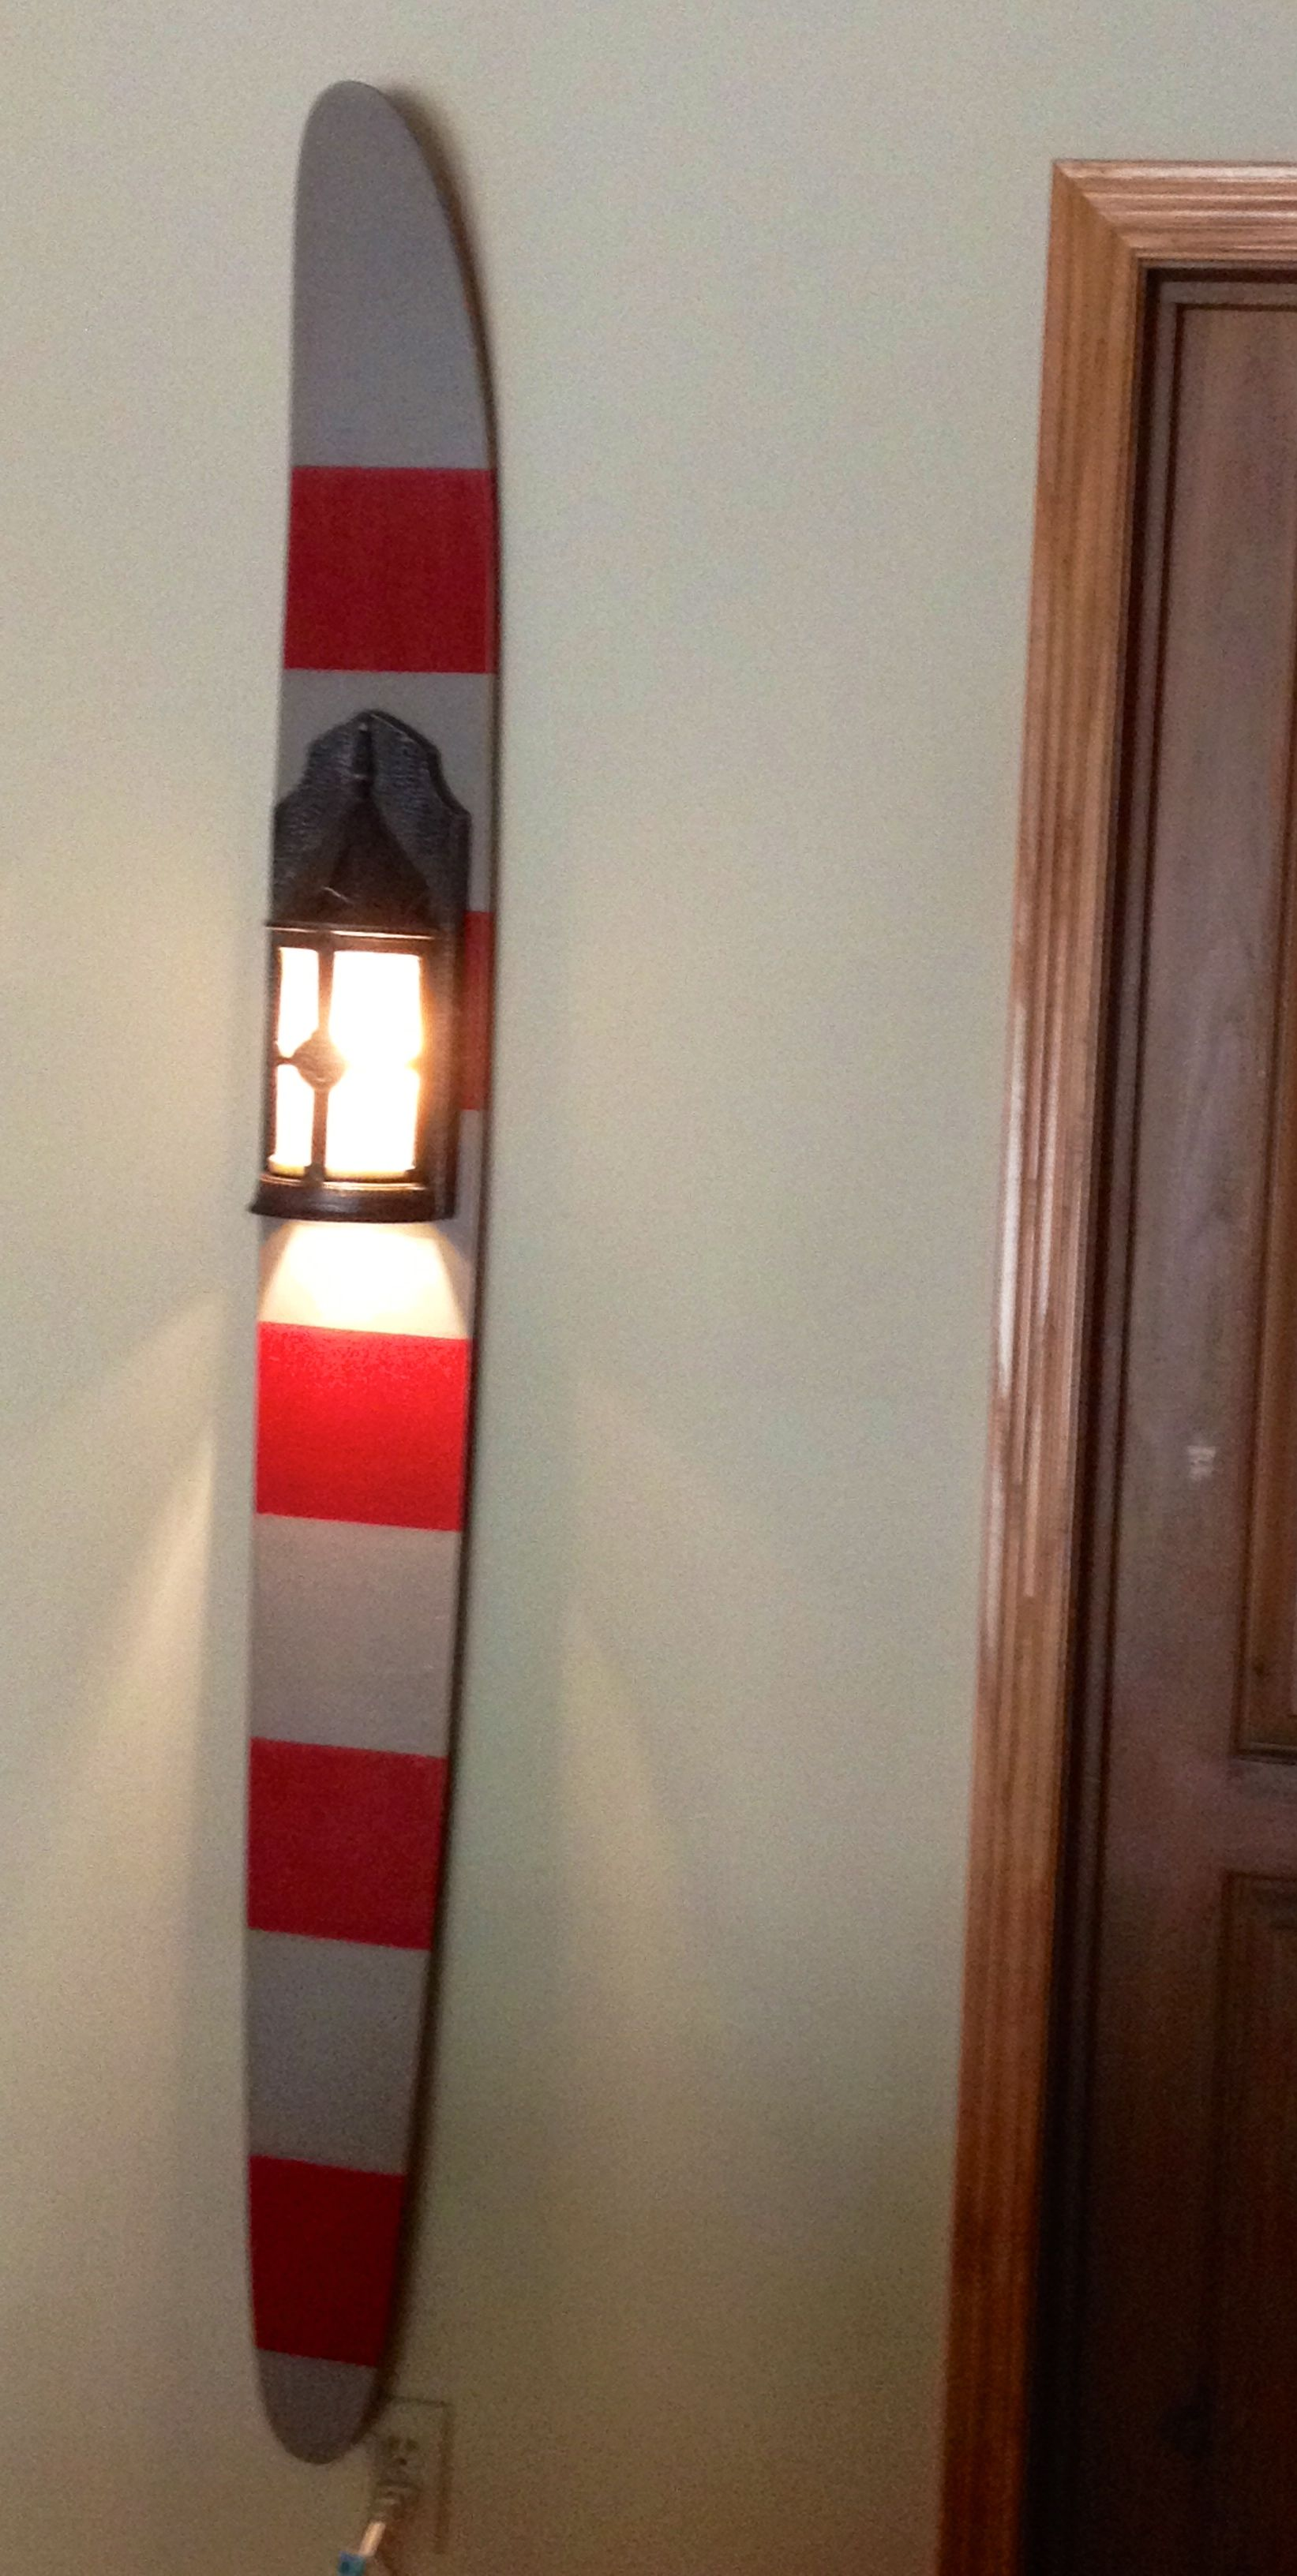 Vintage Water Ski Light Completed Projects Pinterest